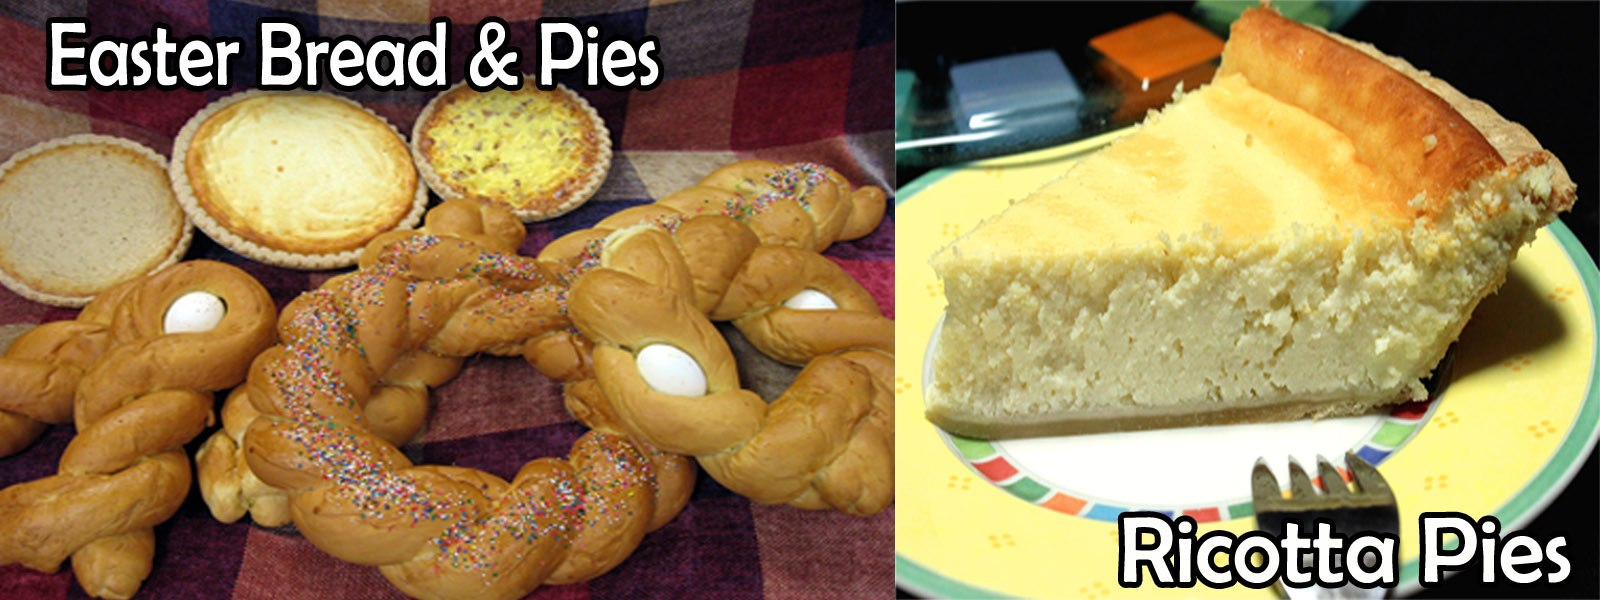 Easter Bread & Pies